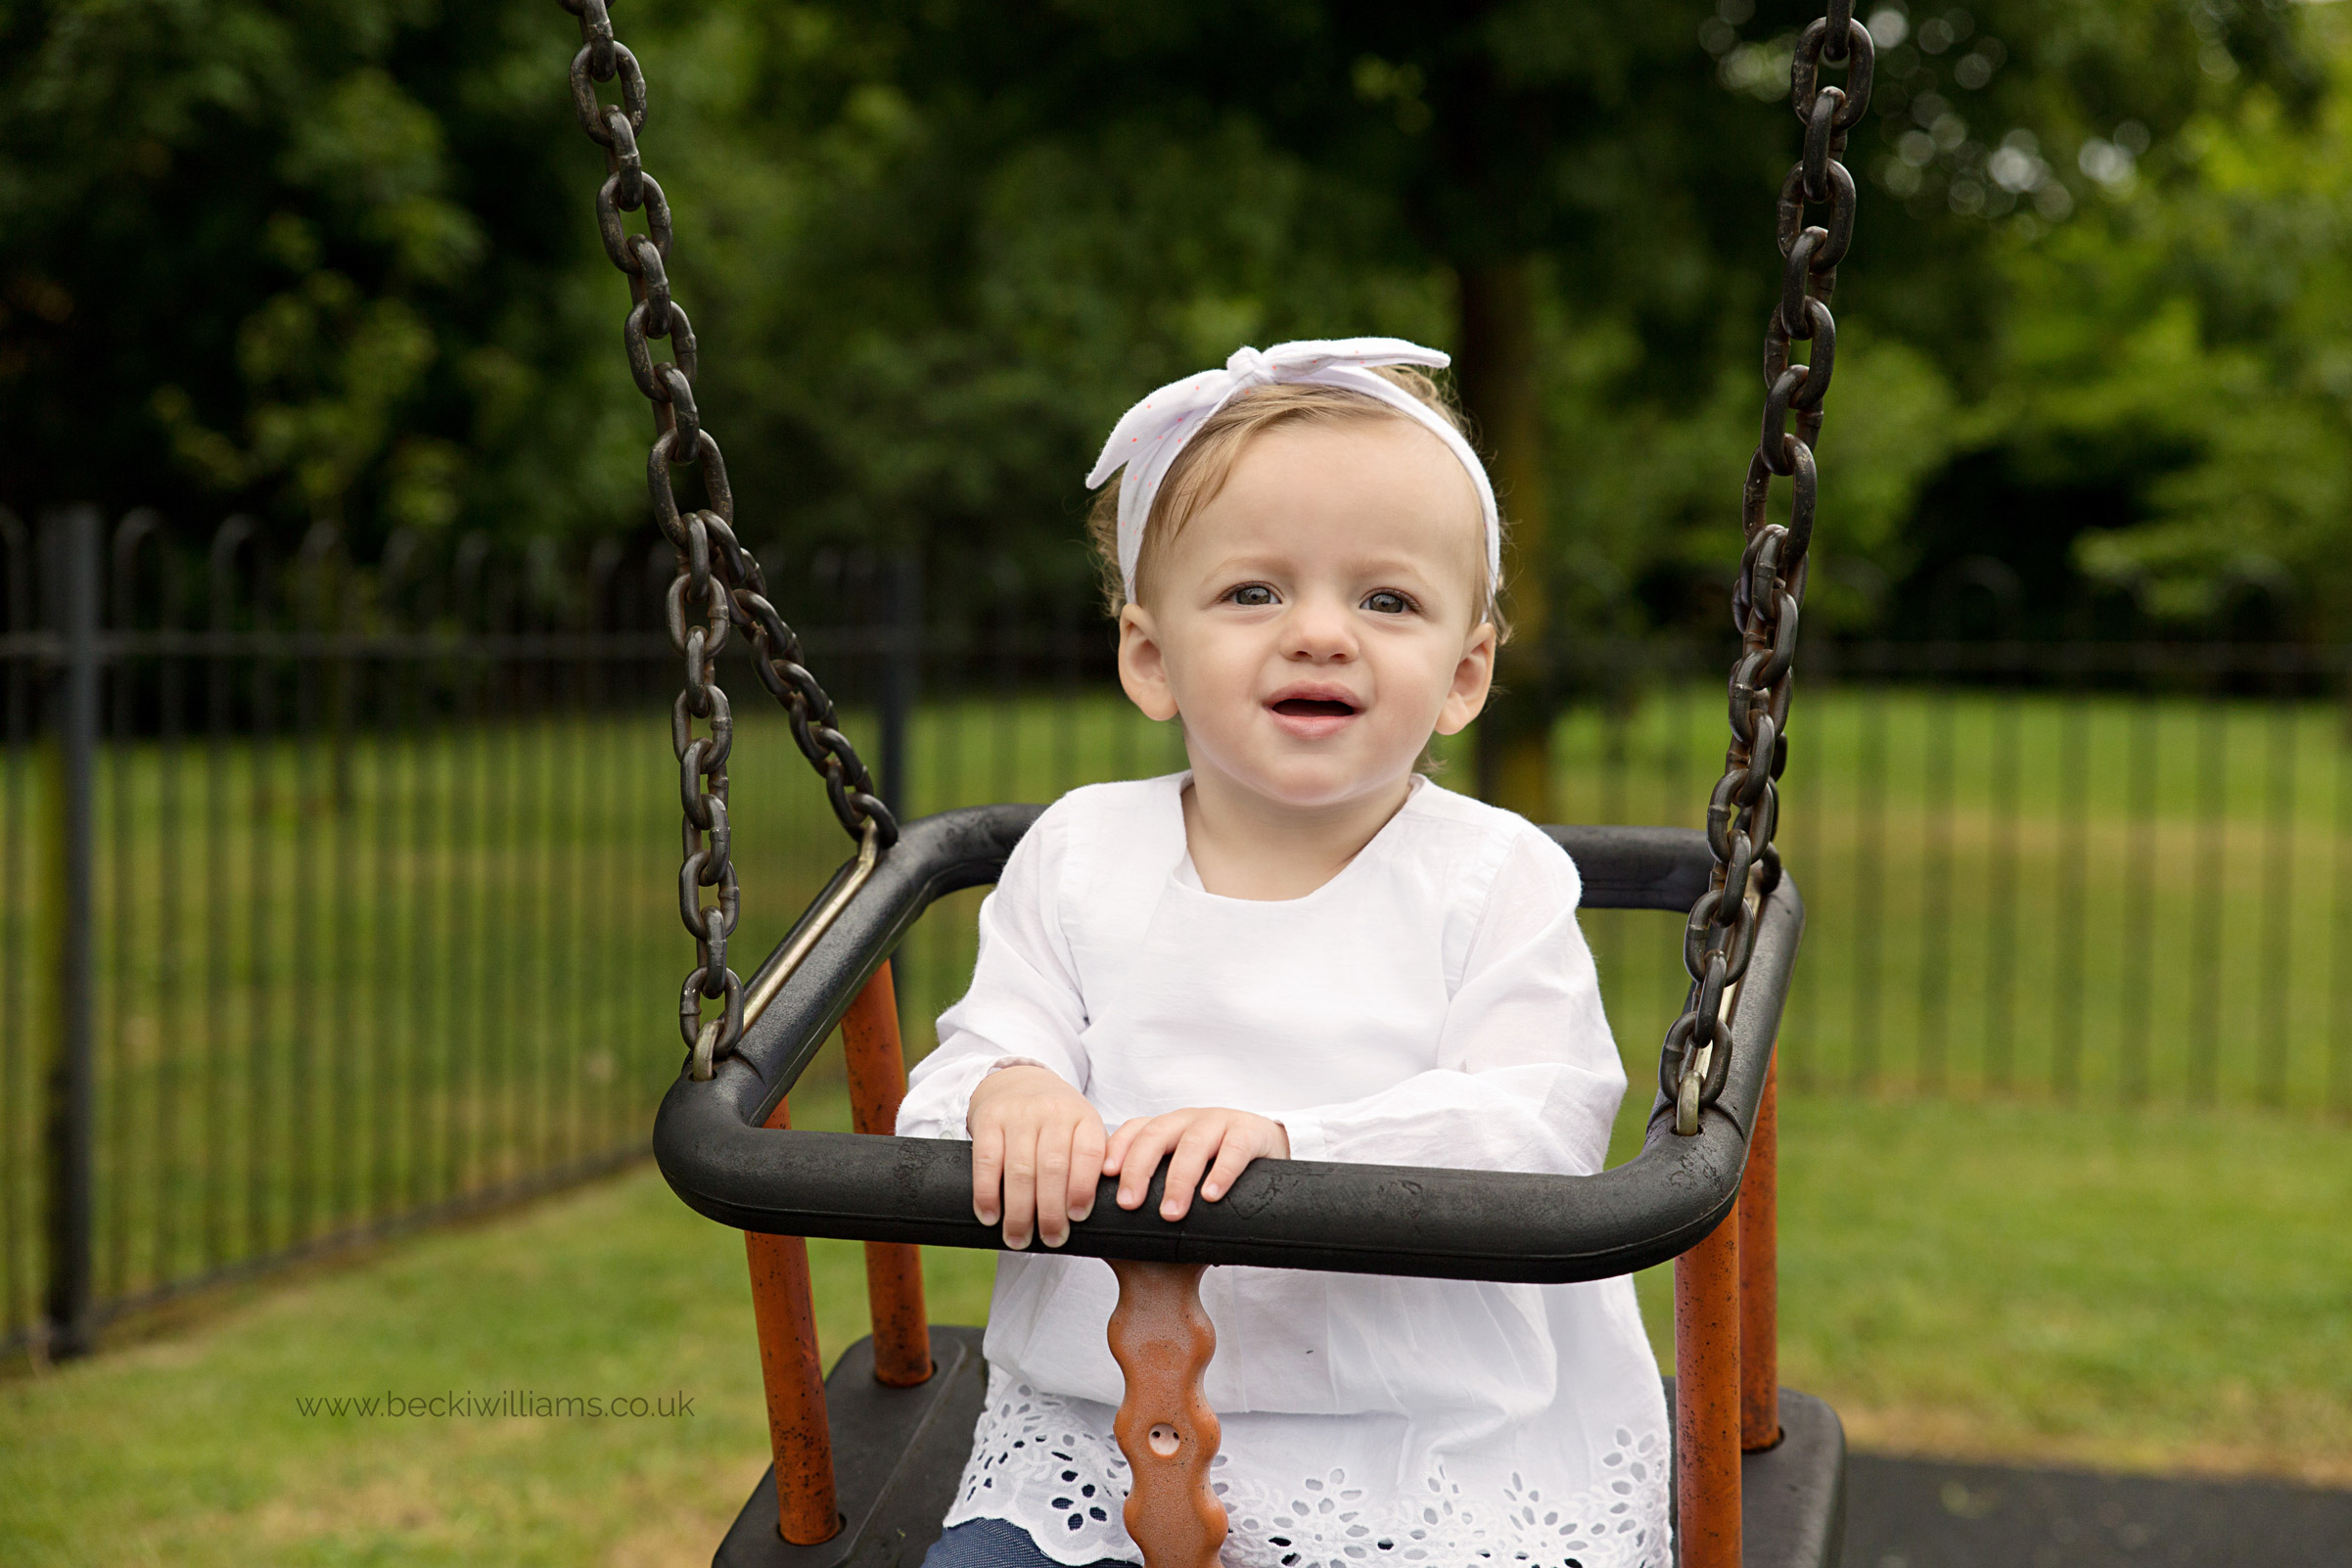 1 year old swings on swing with dad for professional photography